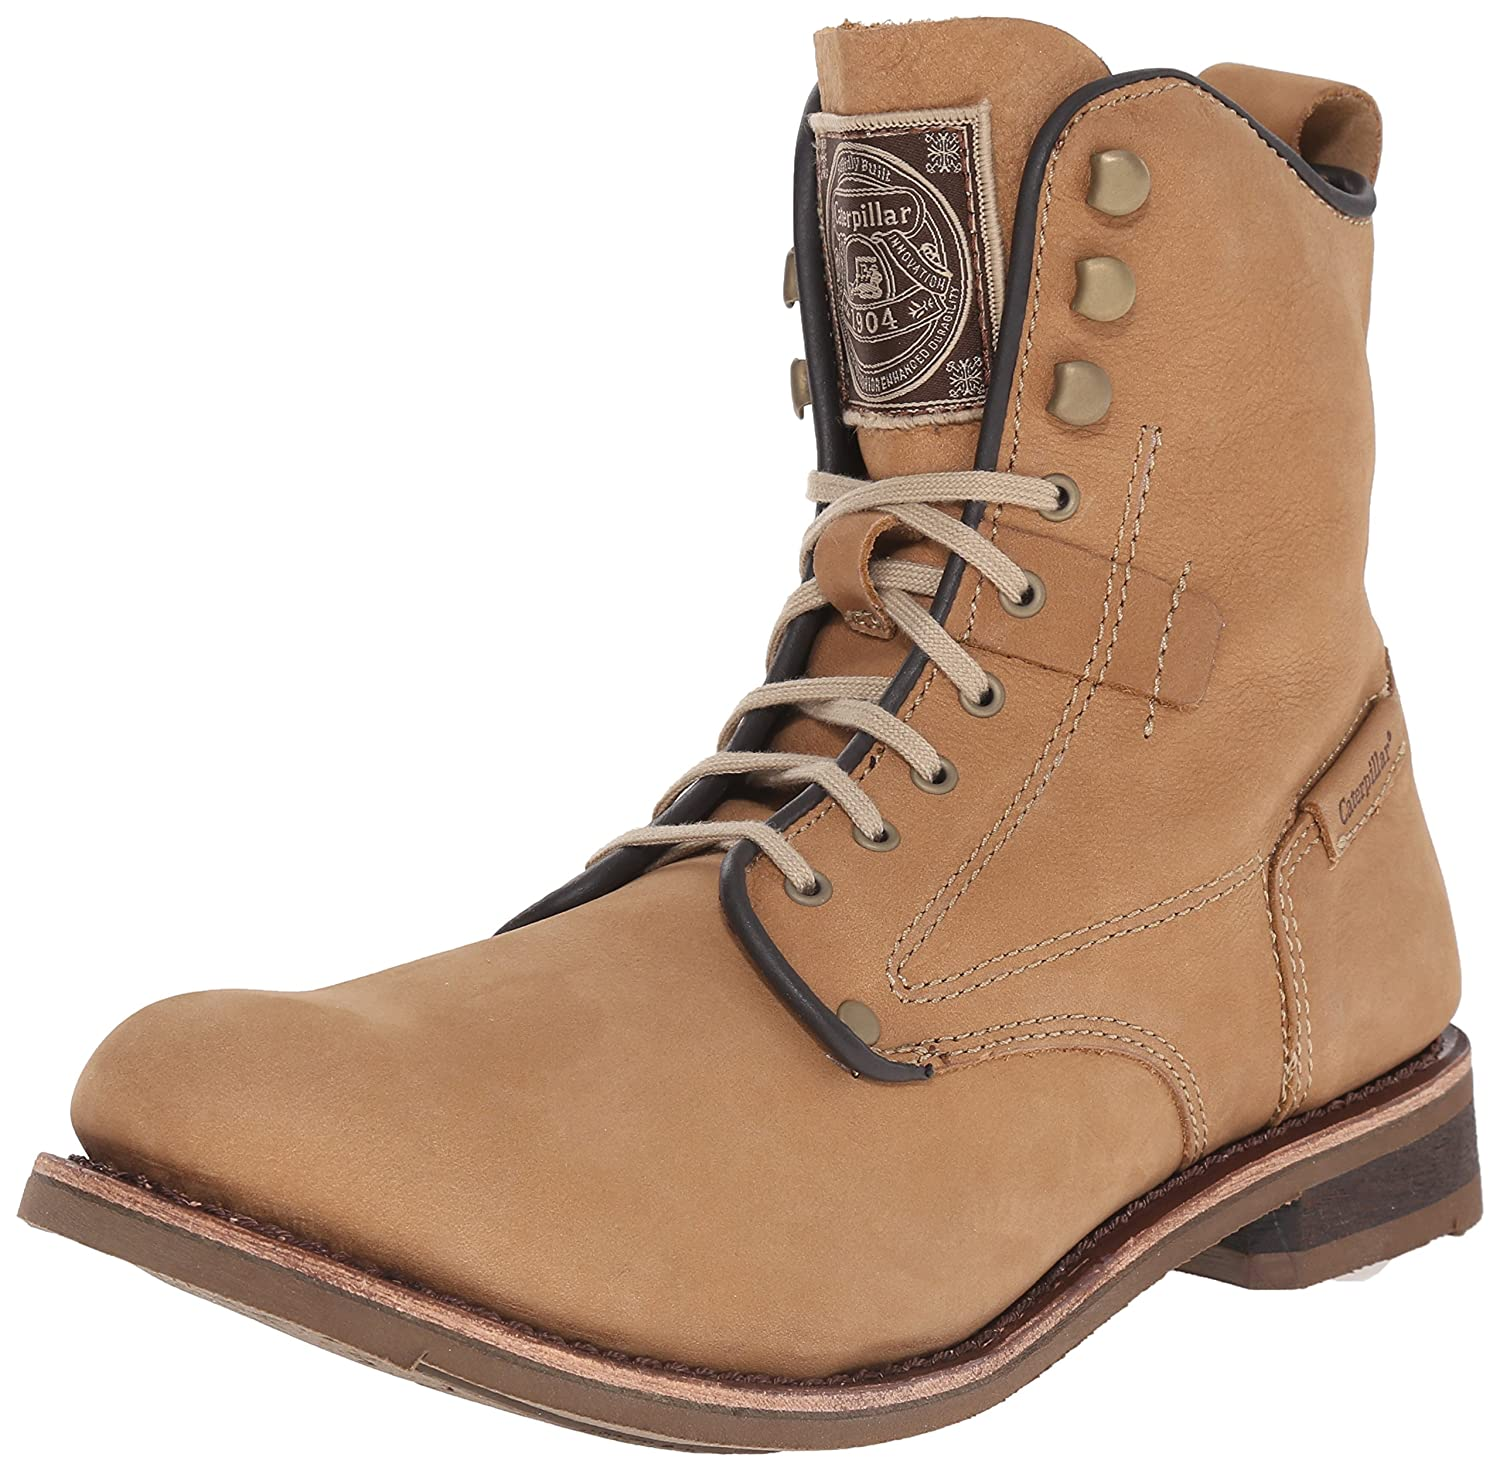 Caterpillar Men's Orson Boot B014S07O2Y 9 D(M) US|Sand